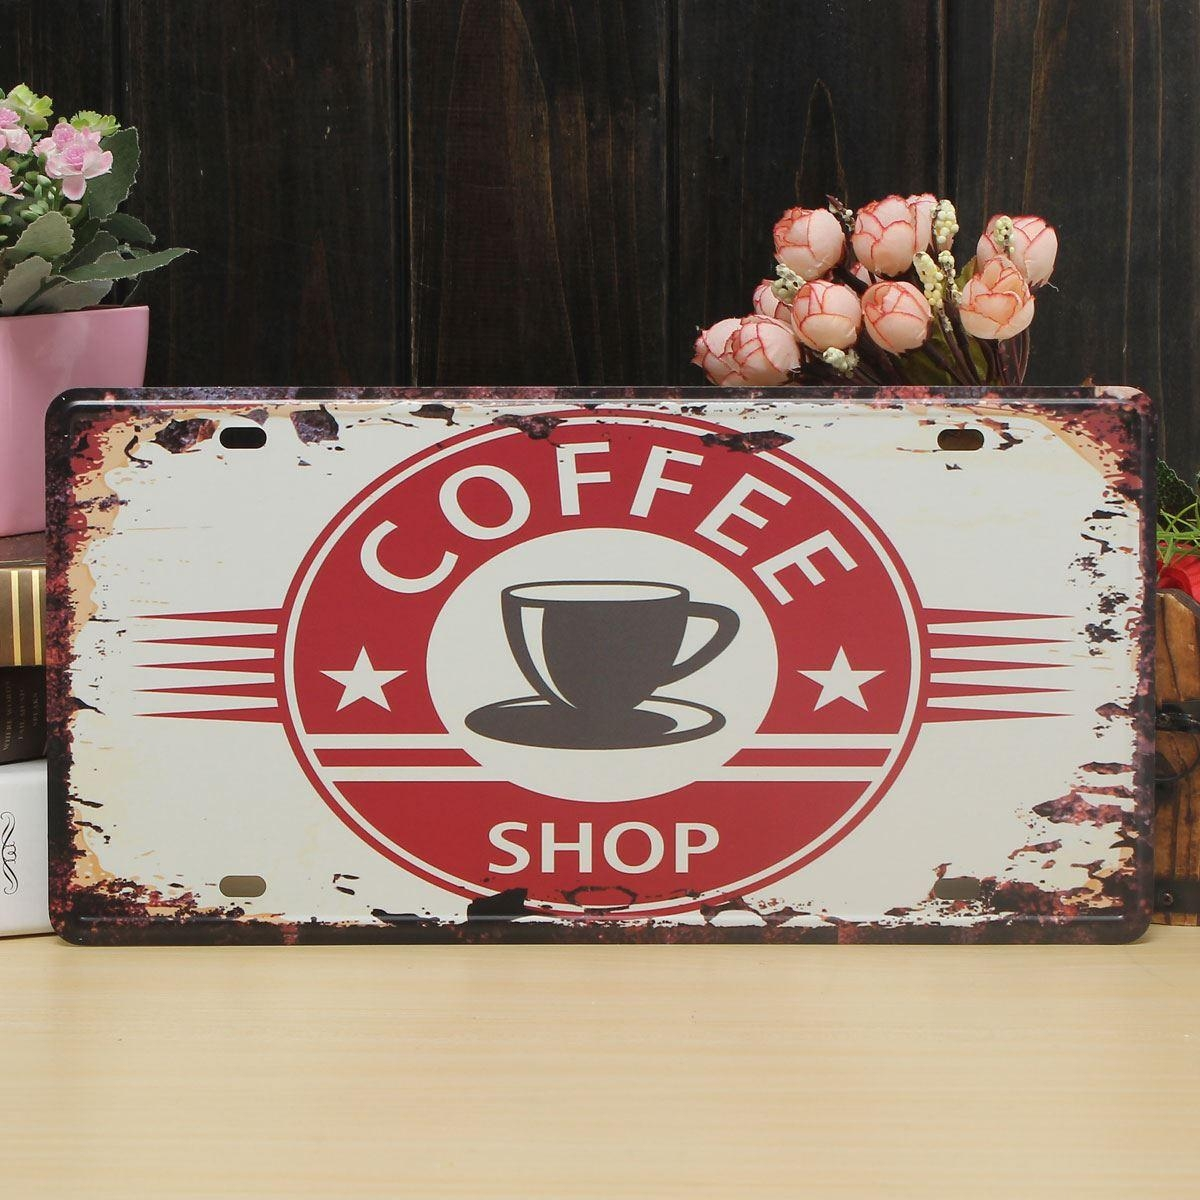 Coffee Theme Vintage Metal Sign The Fresh Brewed Coffee Wall Intended For Coffee Theme Metal Wall Art (Image 9 of 20)